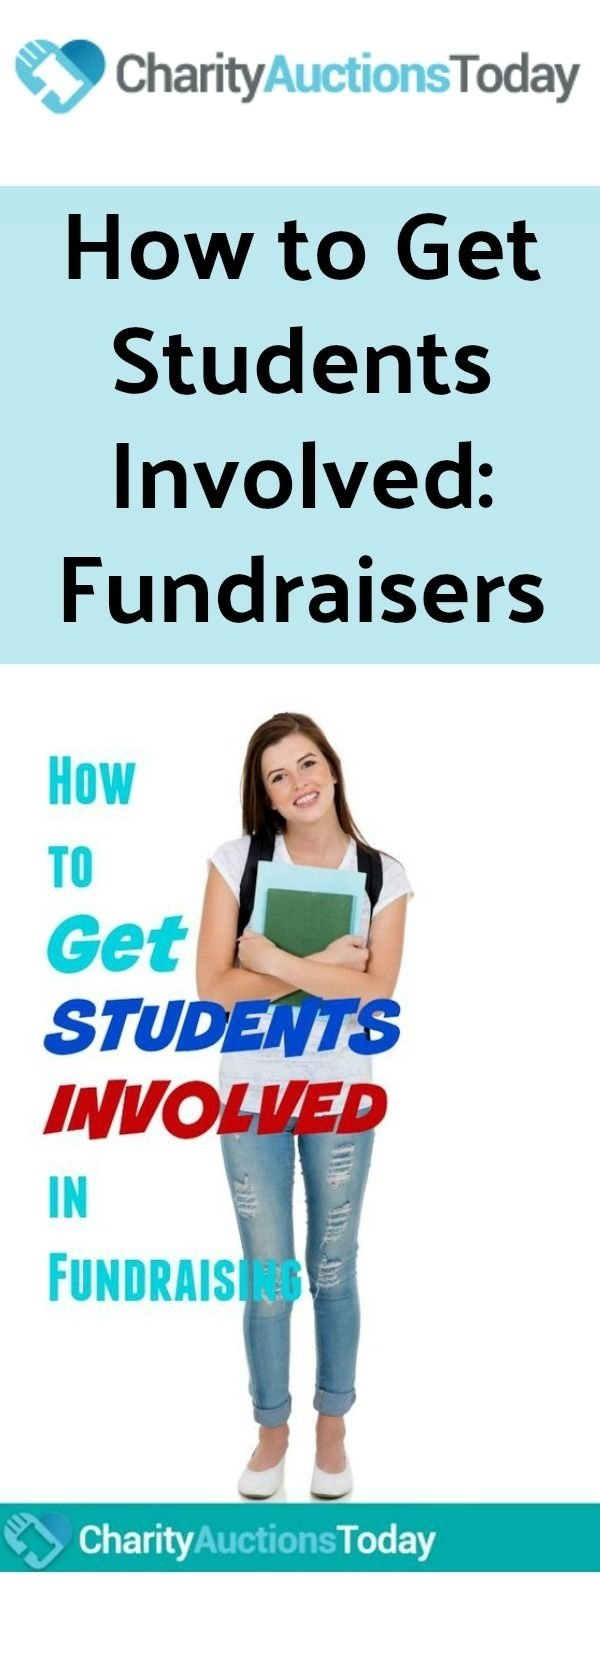 10 Fashionable Service Project Ideas For Highschool Students how to get students involved fundraisers fundraising community 2020